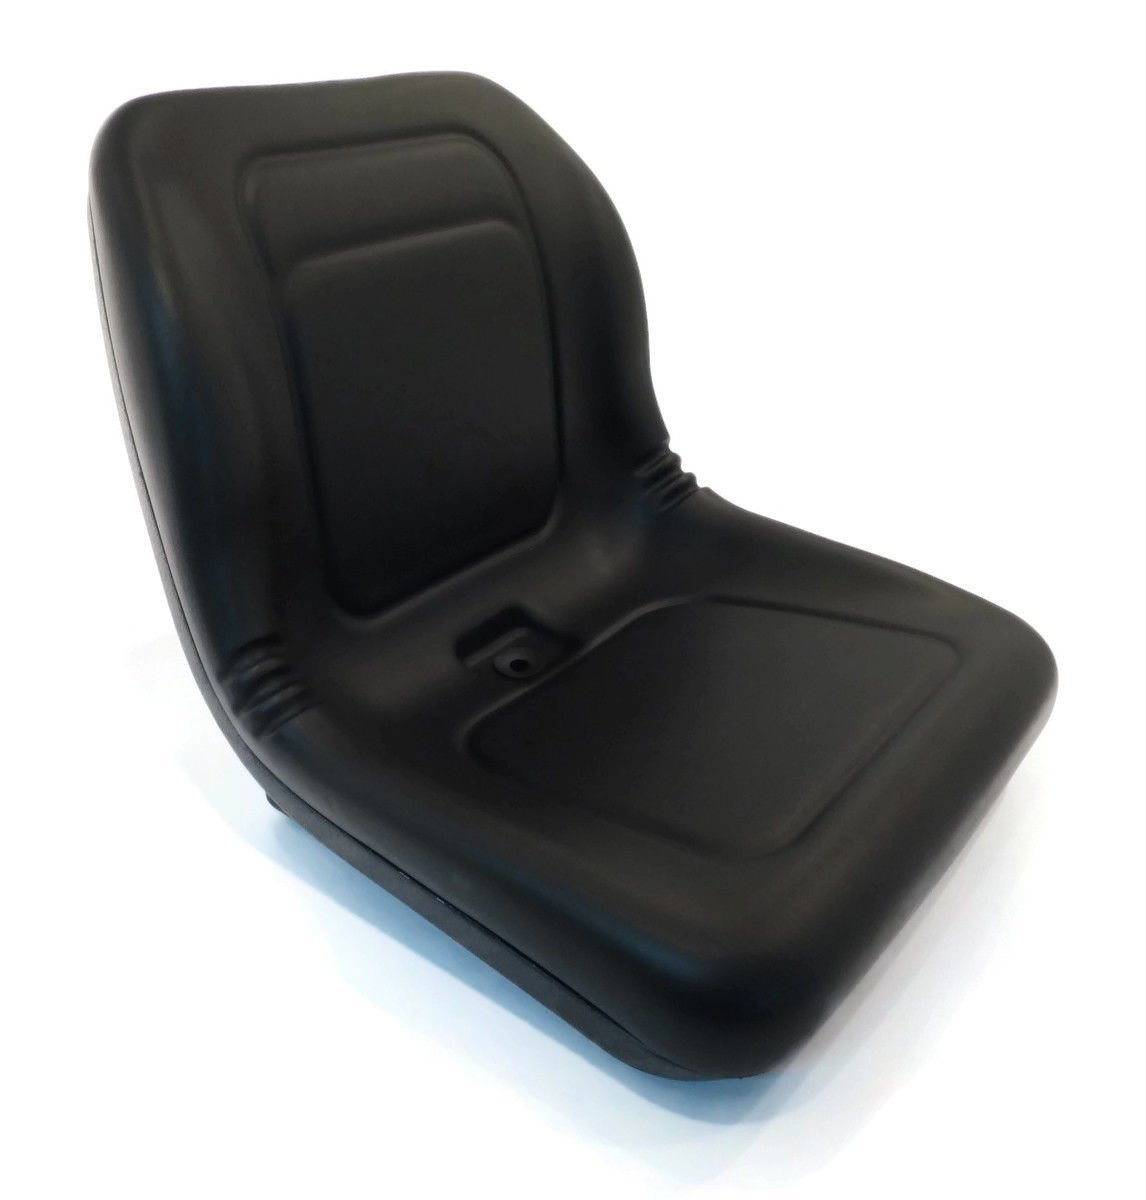 New Black HIGH BACK SEAT for John Deere VG11696 VG12160 VGA10177 XB180 XB-180 supplier_id_theropshop, #UGEIO110251965627787